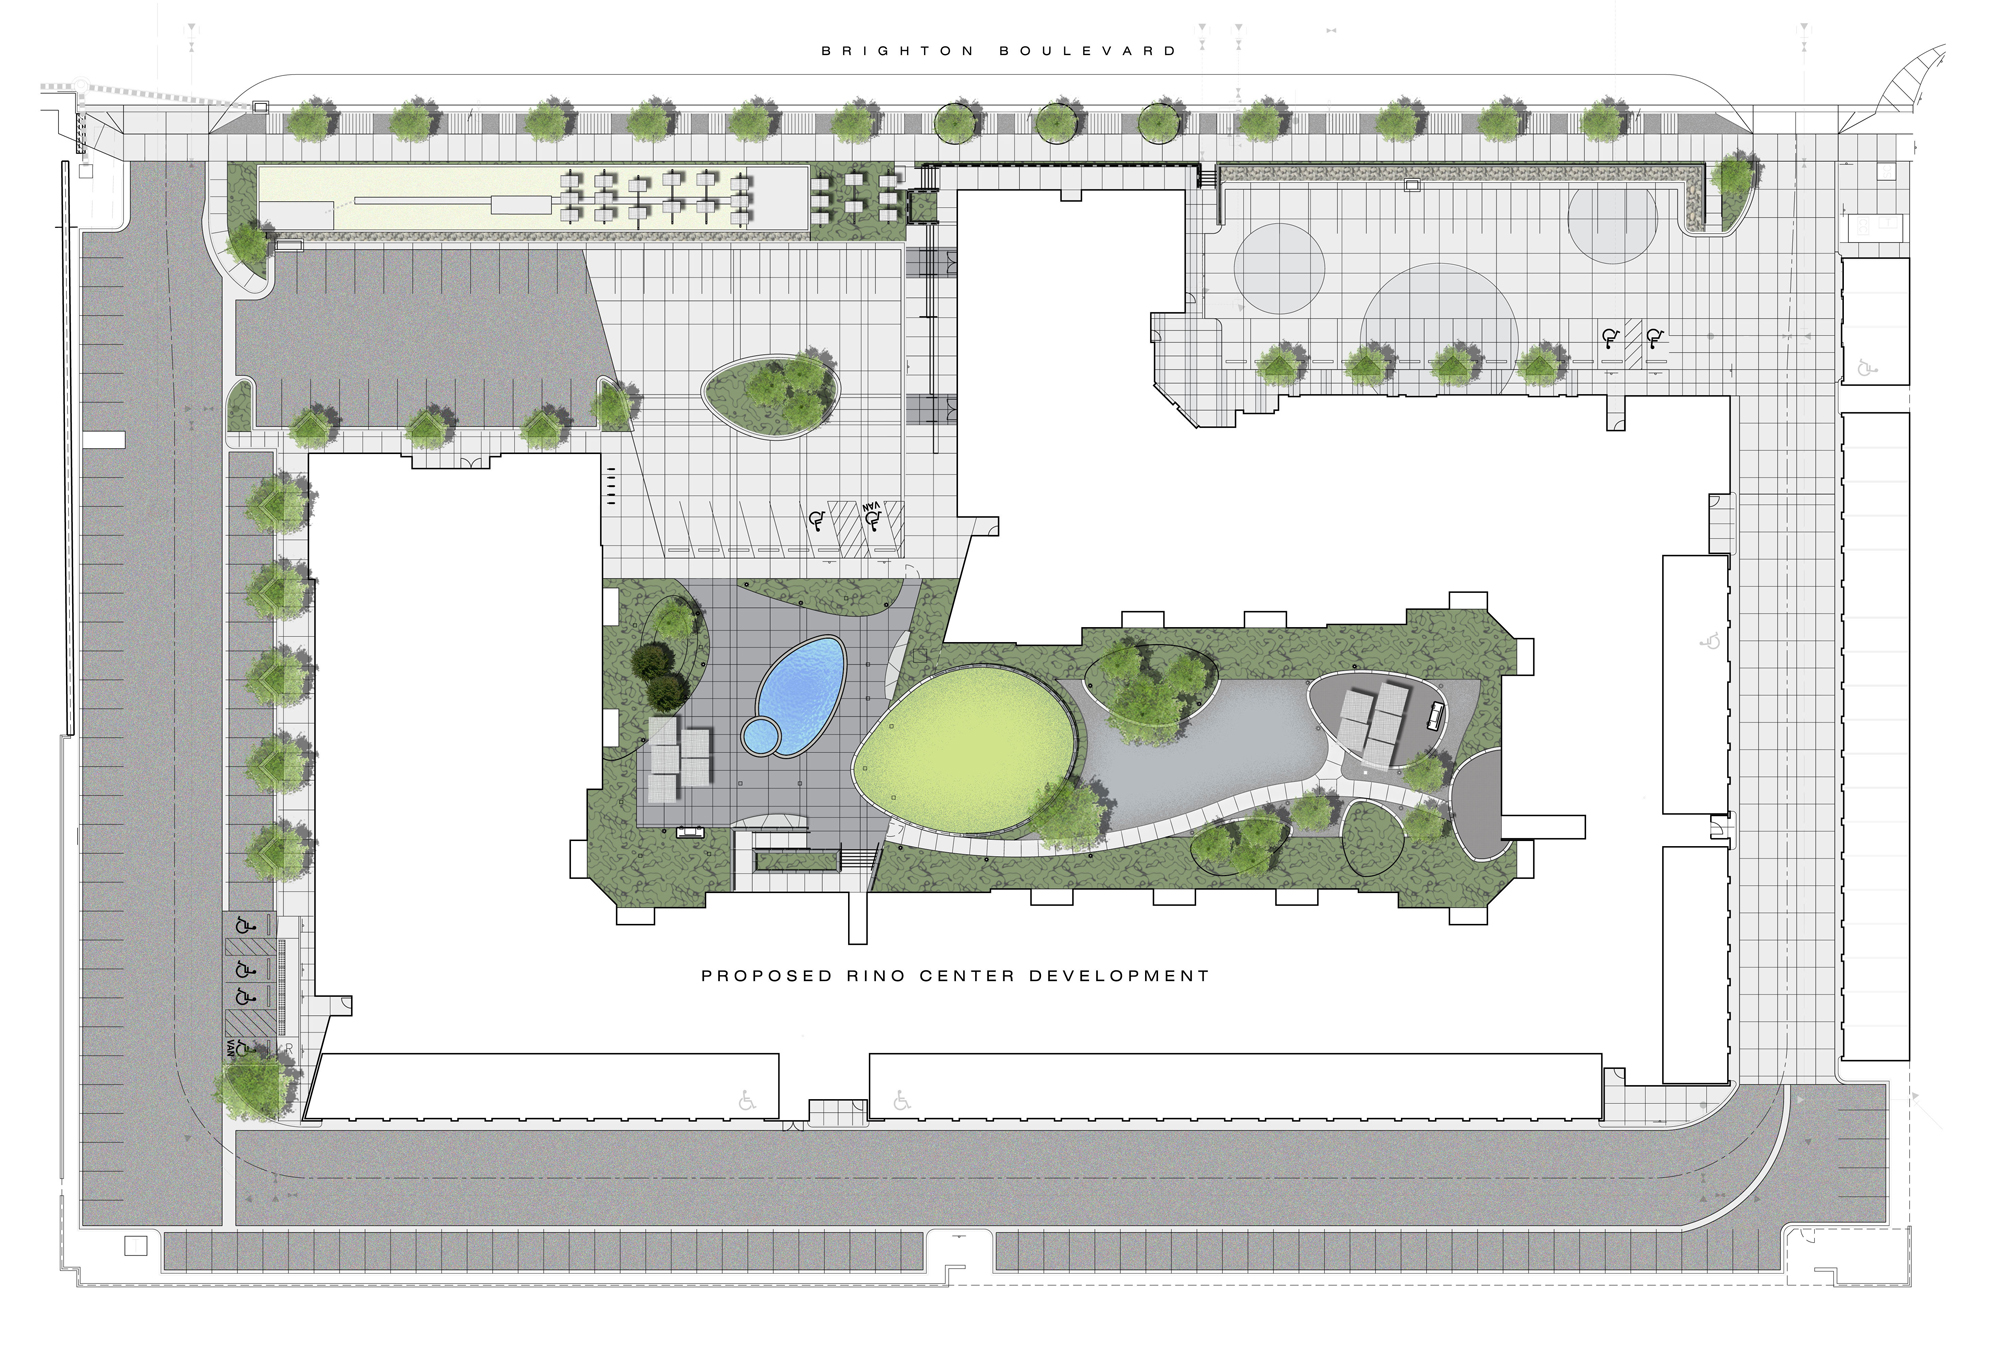 """<img src="""" studioINSITE_Block_32_Site Illustrative Plan """"alt=""""Urban Living, Multifamily Courtyard, Amenity Deck, Fire Pit, Grill Area, Shade Structure, Zen Garden, Infinity Pool,  Landscape Architecture,Denver, CO, Colorado Courtyards, Amenity Spaces, Great Courtyard Designs, RiNO Neighrborhood"""" title=""""Block 32 at RiNO""""/>"""